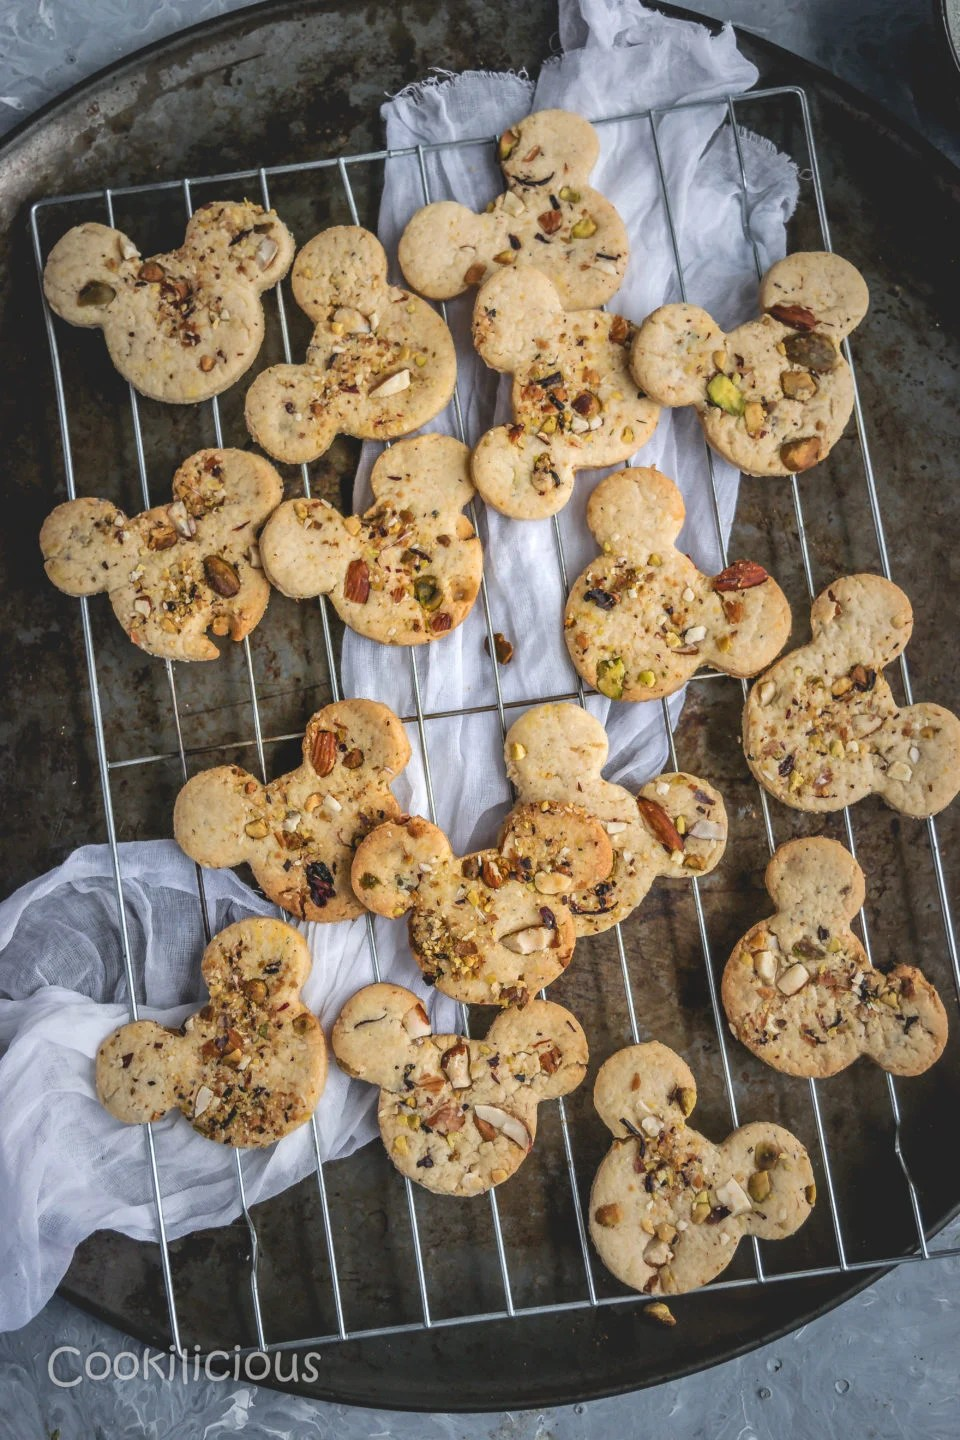 Eggless Kesar Pista Badam Biscuits/Saffron Cashew Almond Cookies resting on a rack with muslin cloth underneath it